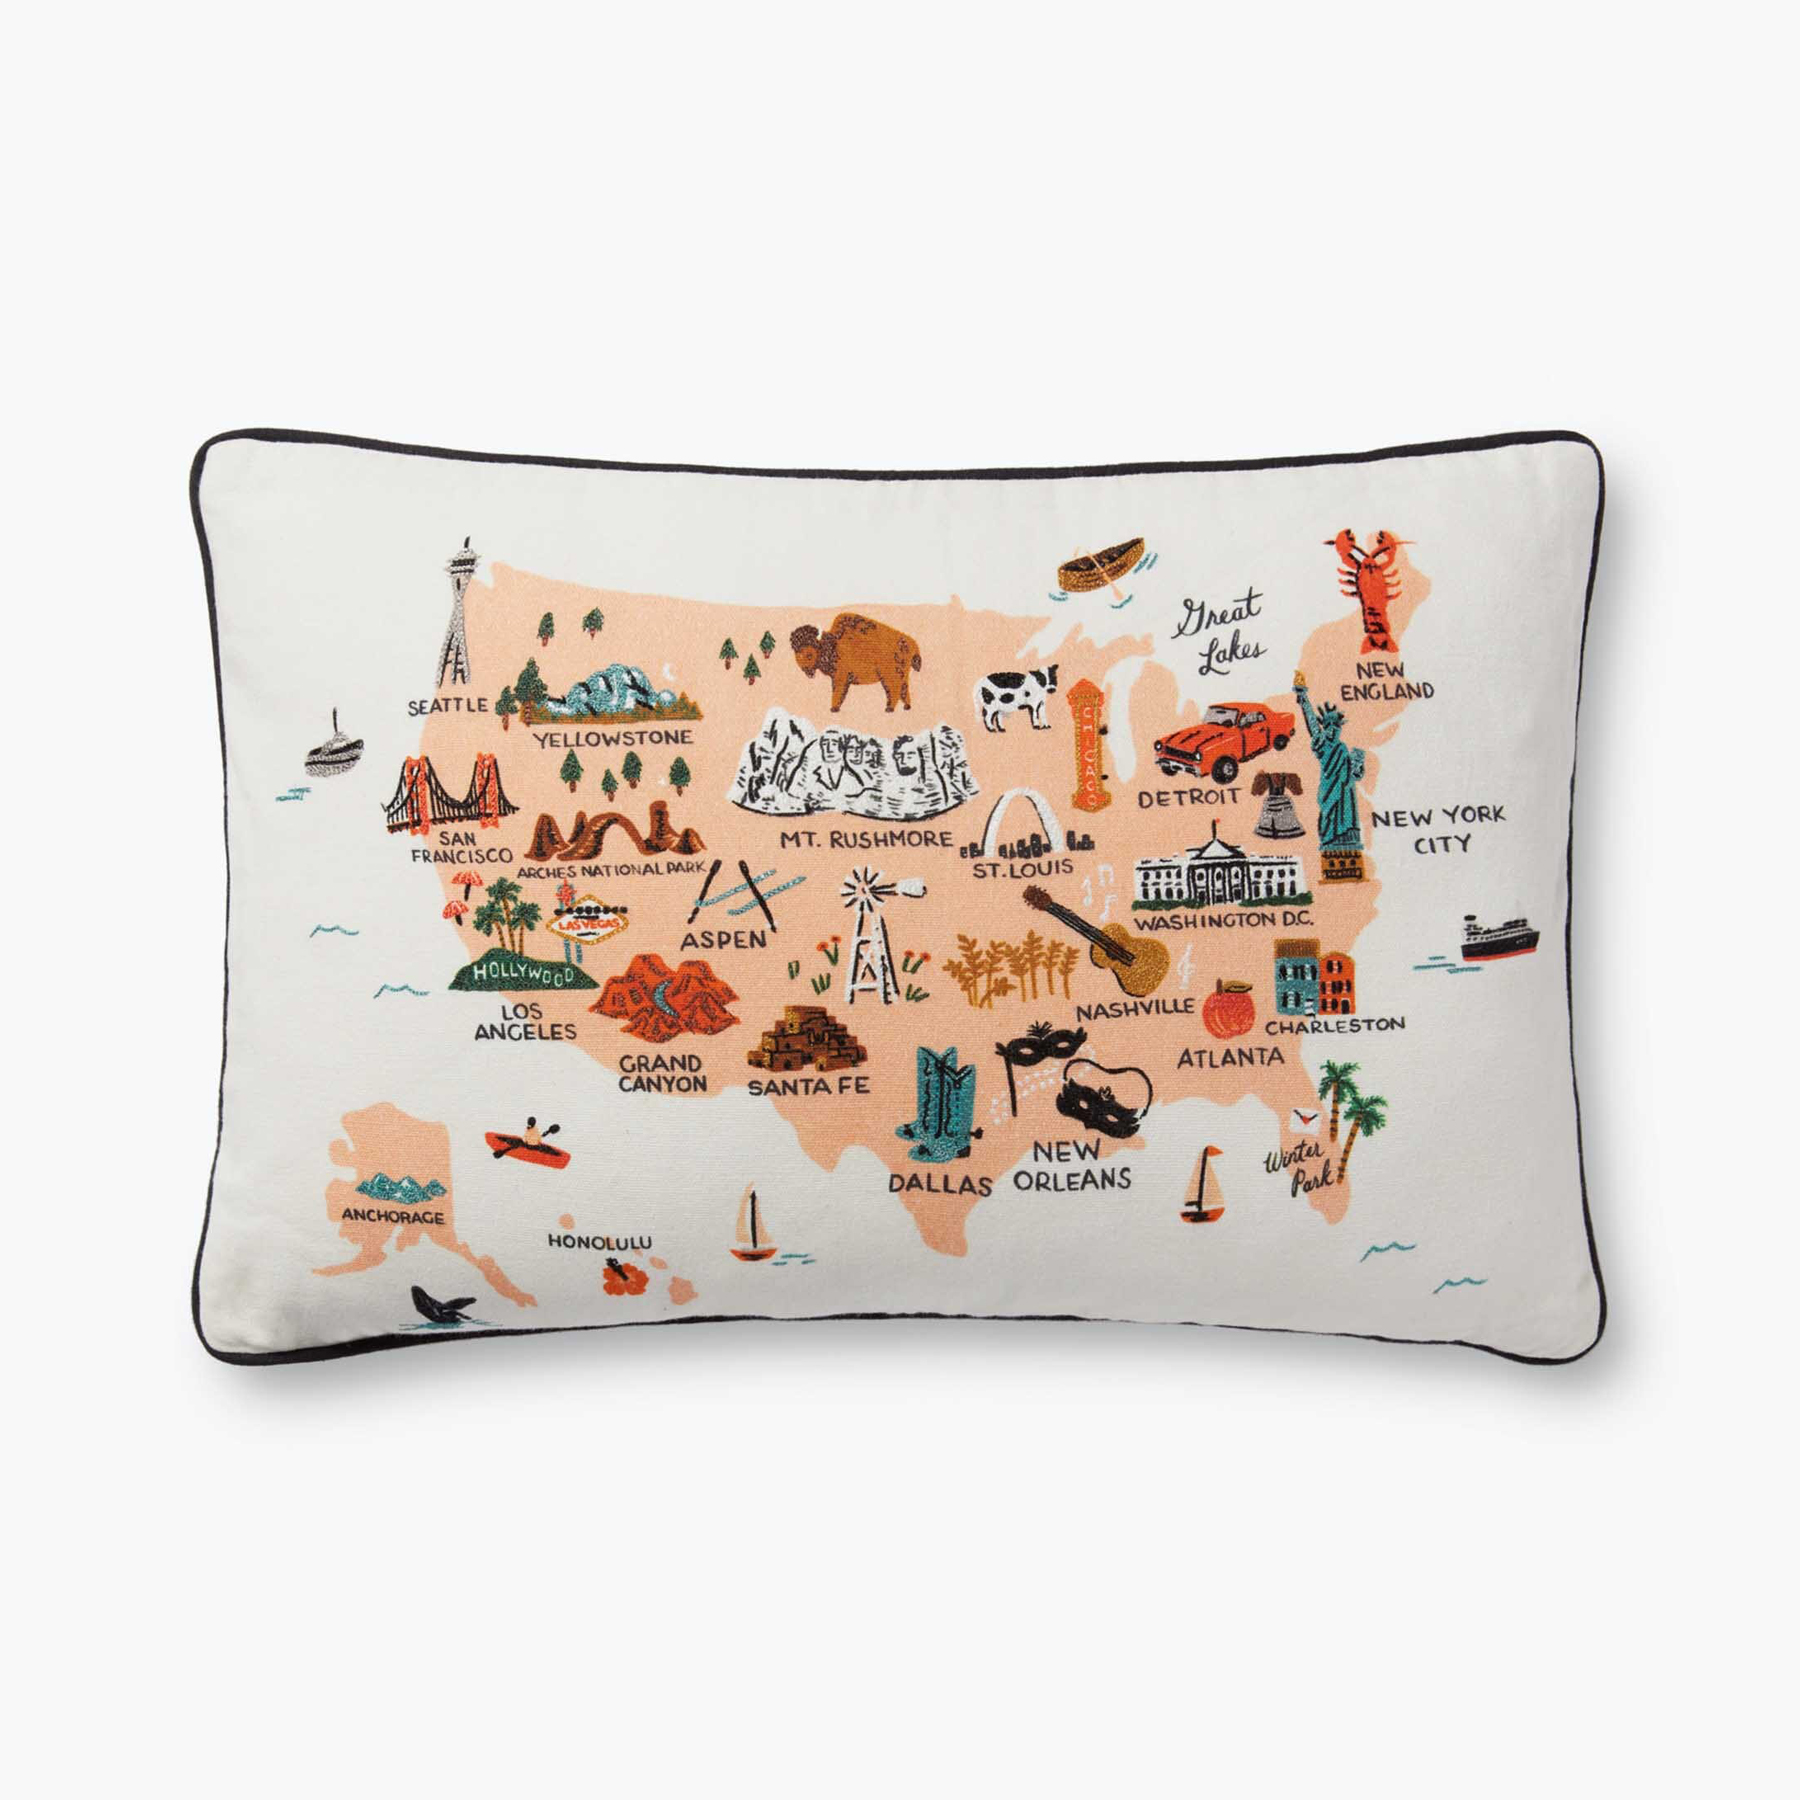 Best housewarming gifts, ideas - Rifle Paper Co. United States of America Embroidered Pillow